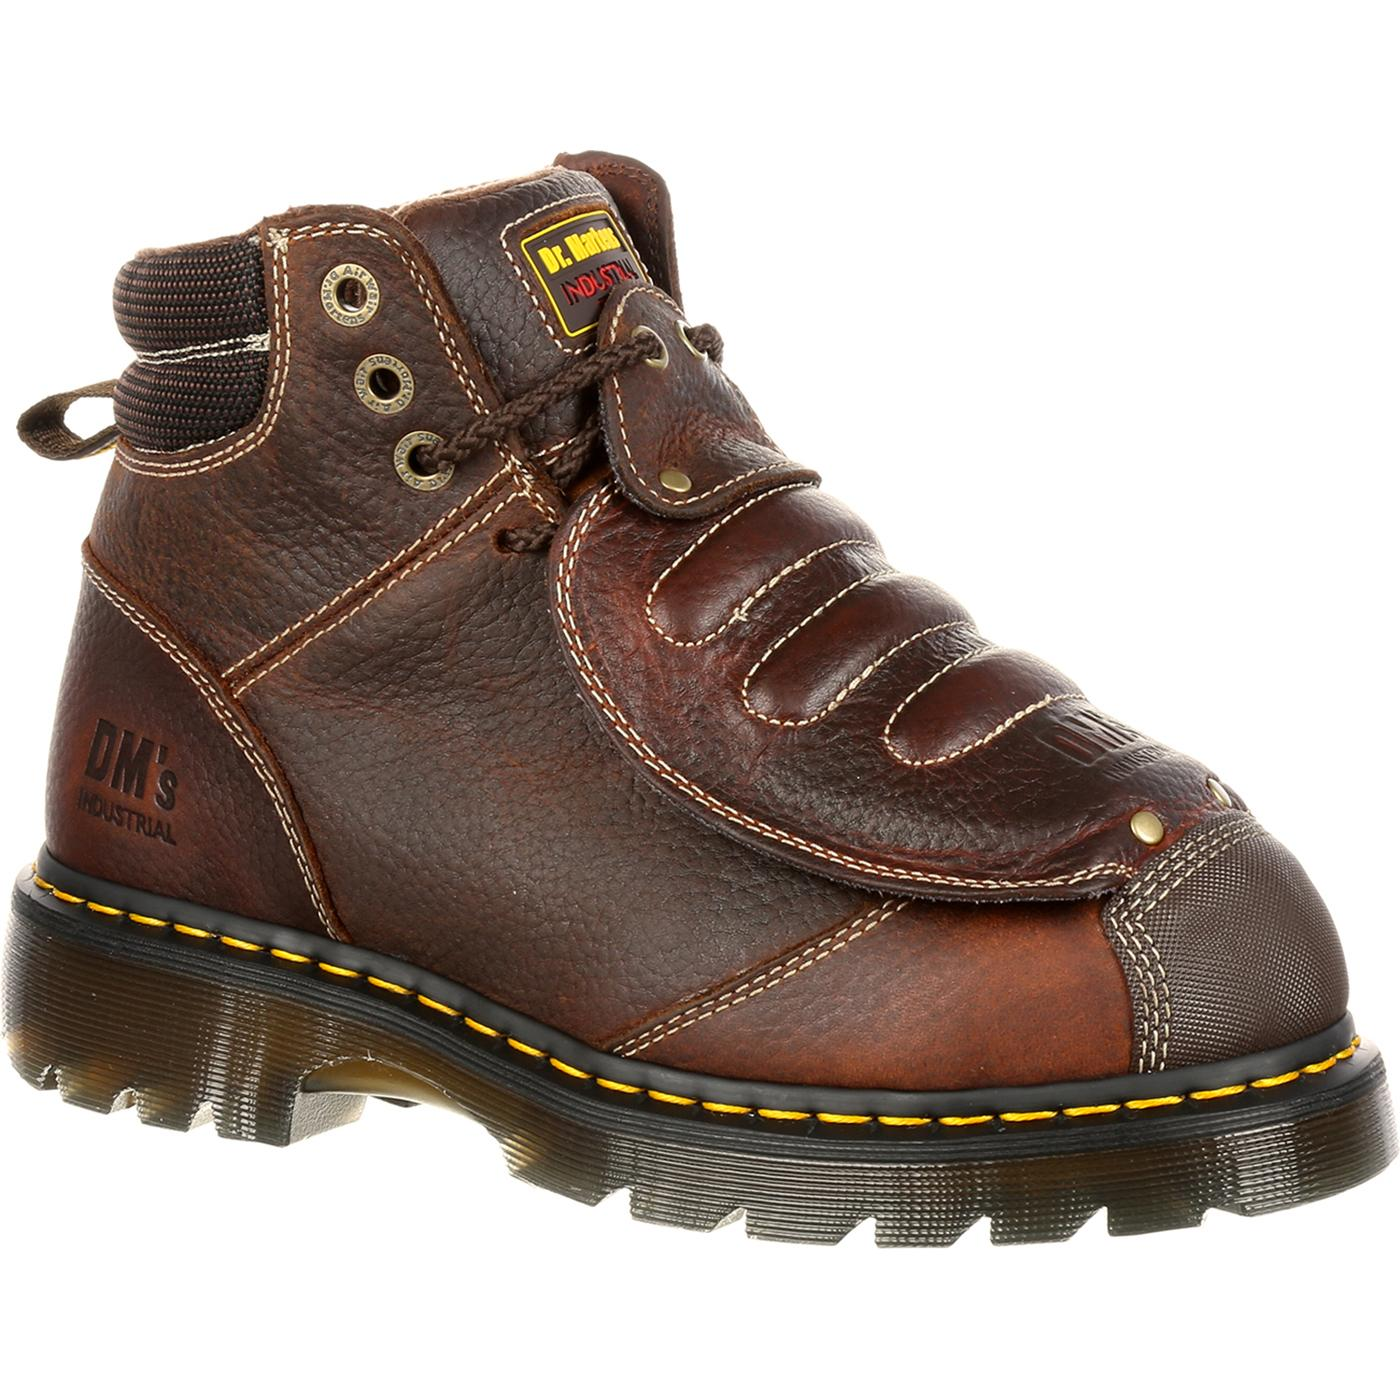 152c39be95d Dr. Martens Ironbridge Steel Toe Metatarsal Work Boot